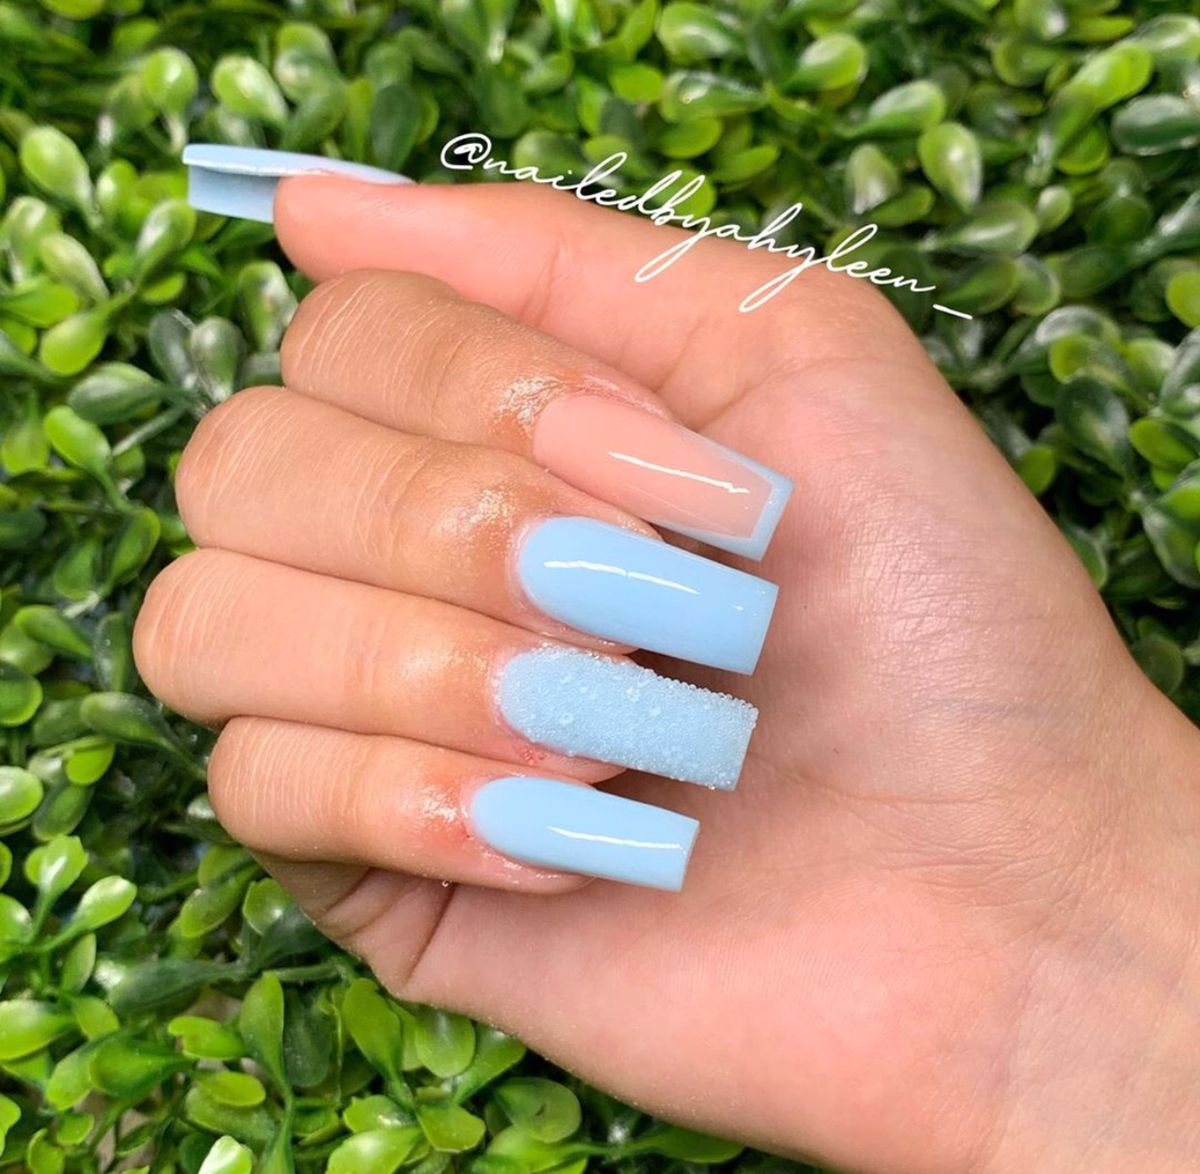 Pin by Gomeztania on Baby Blue Nails in 2020 | Baby blue ...